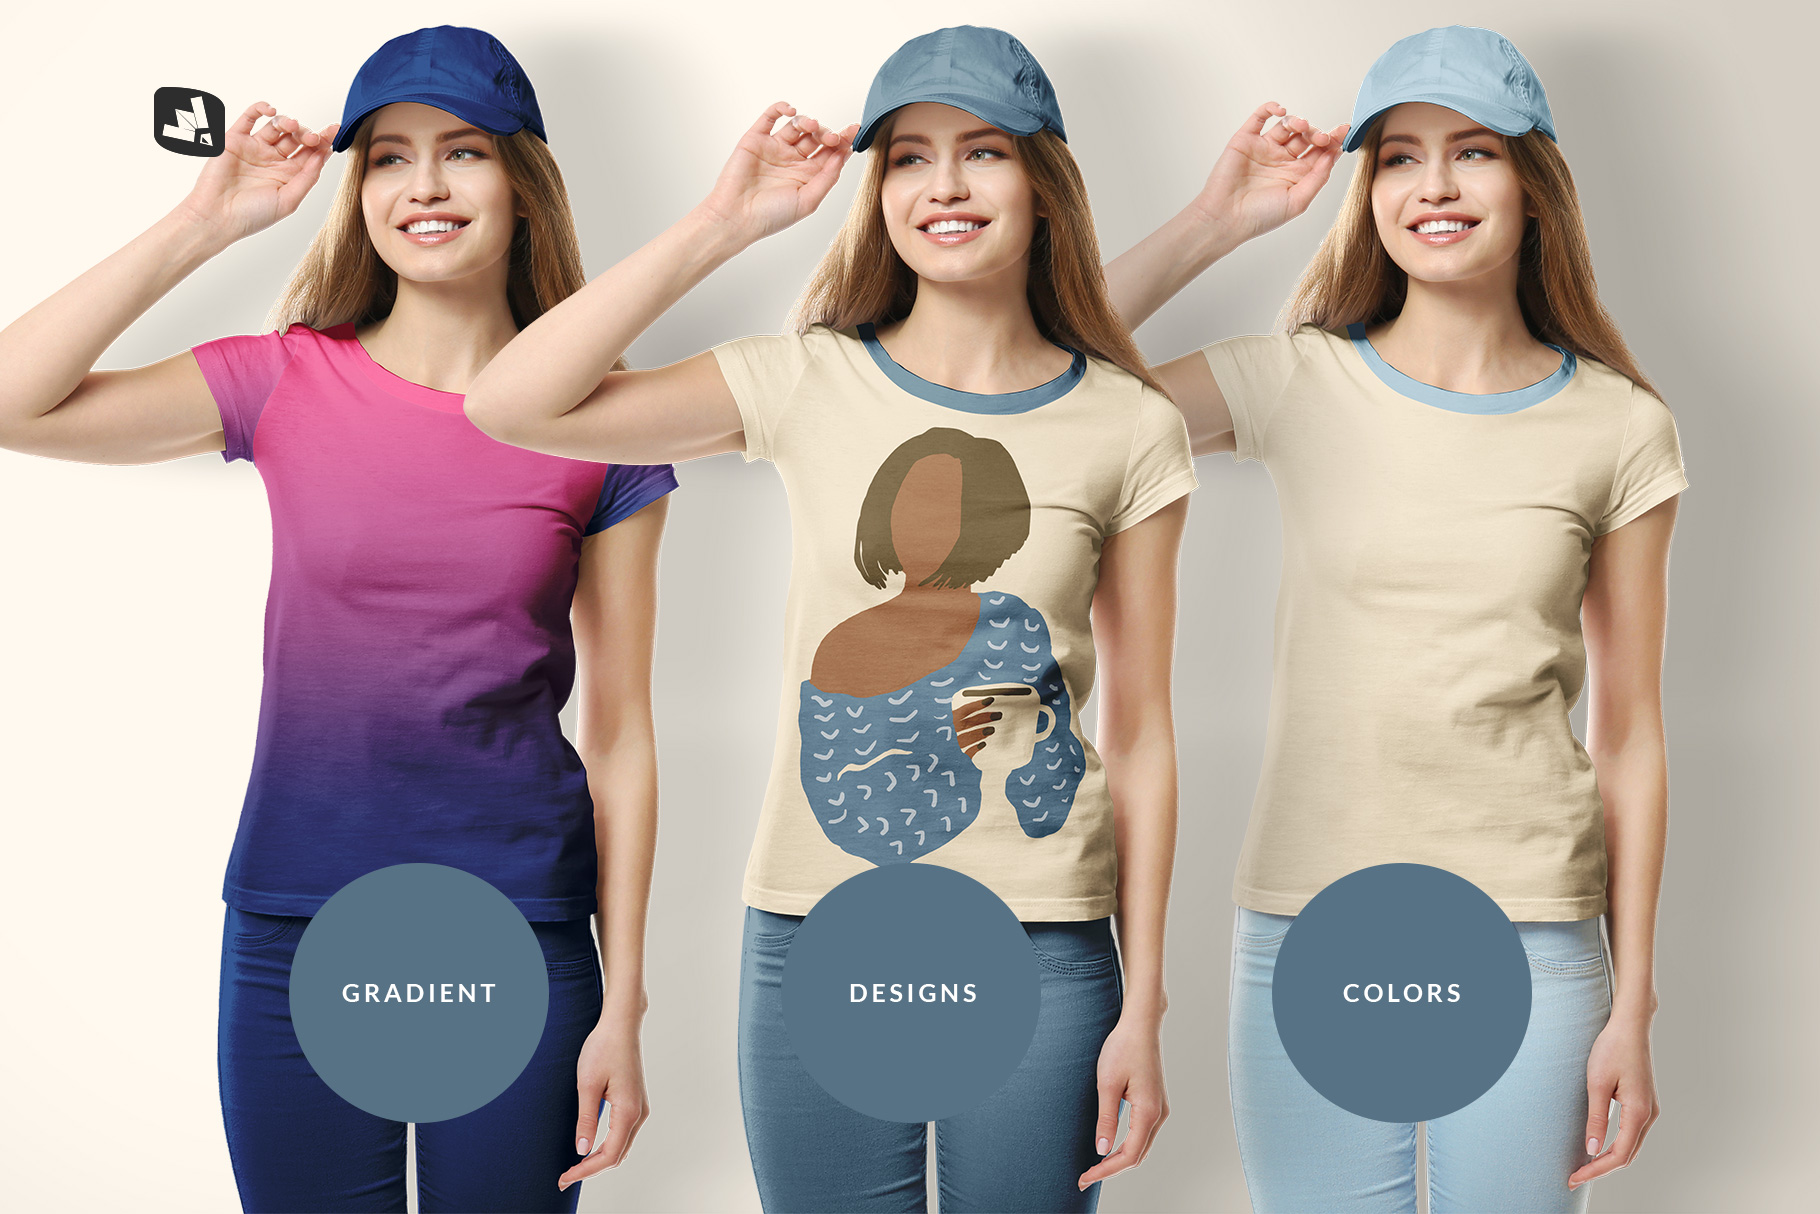 types of the women's tshirt with cap mockup